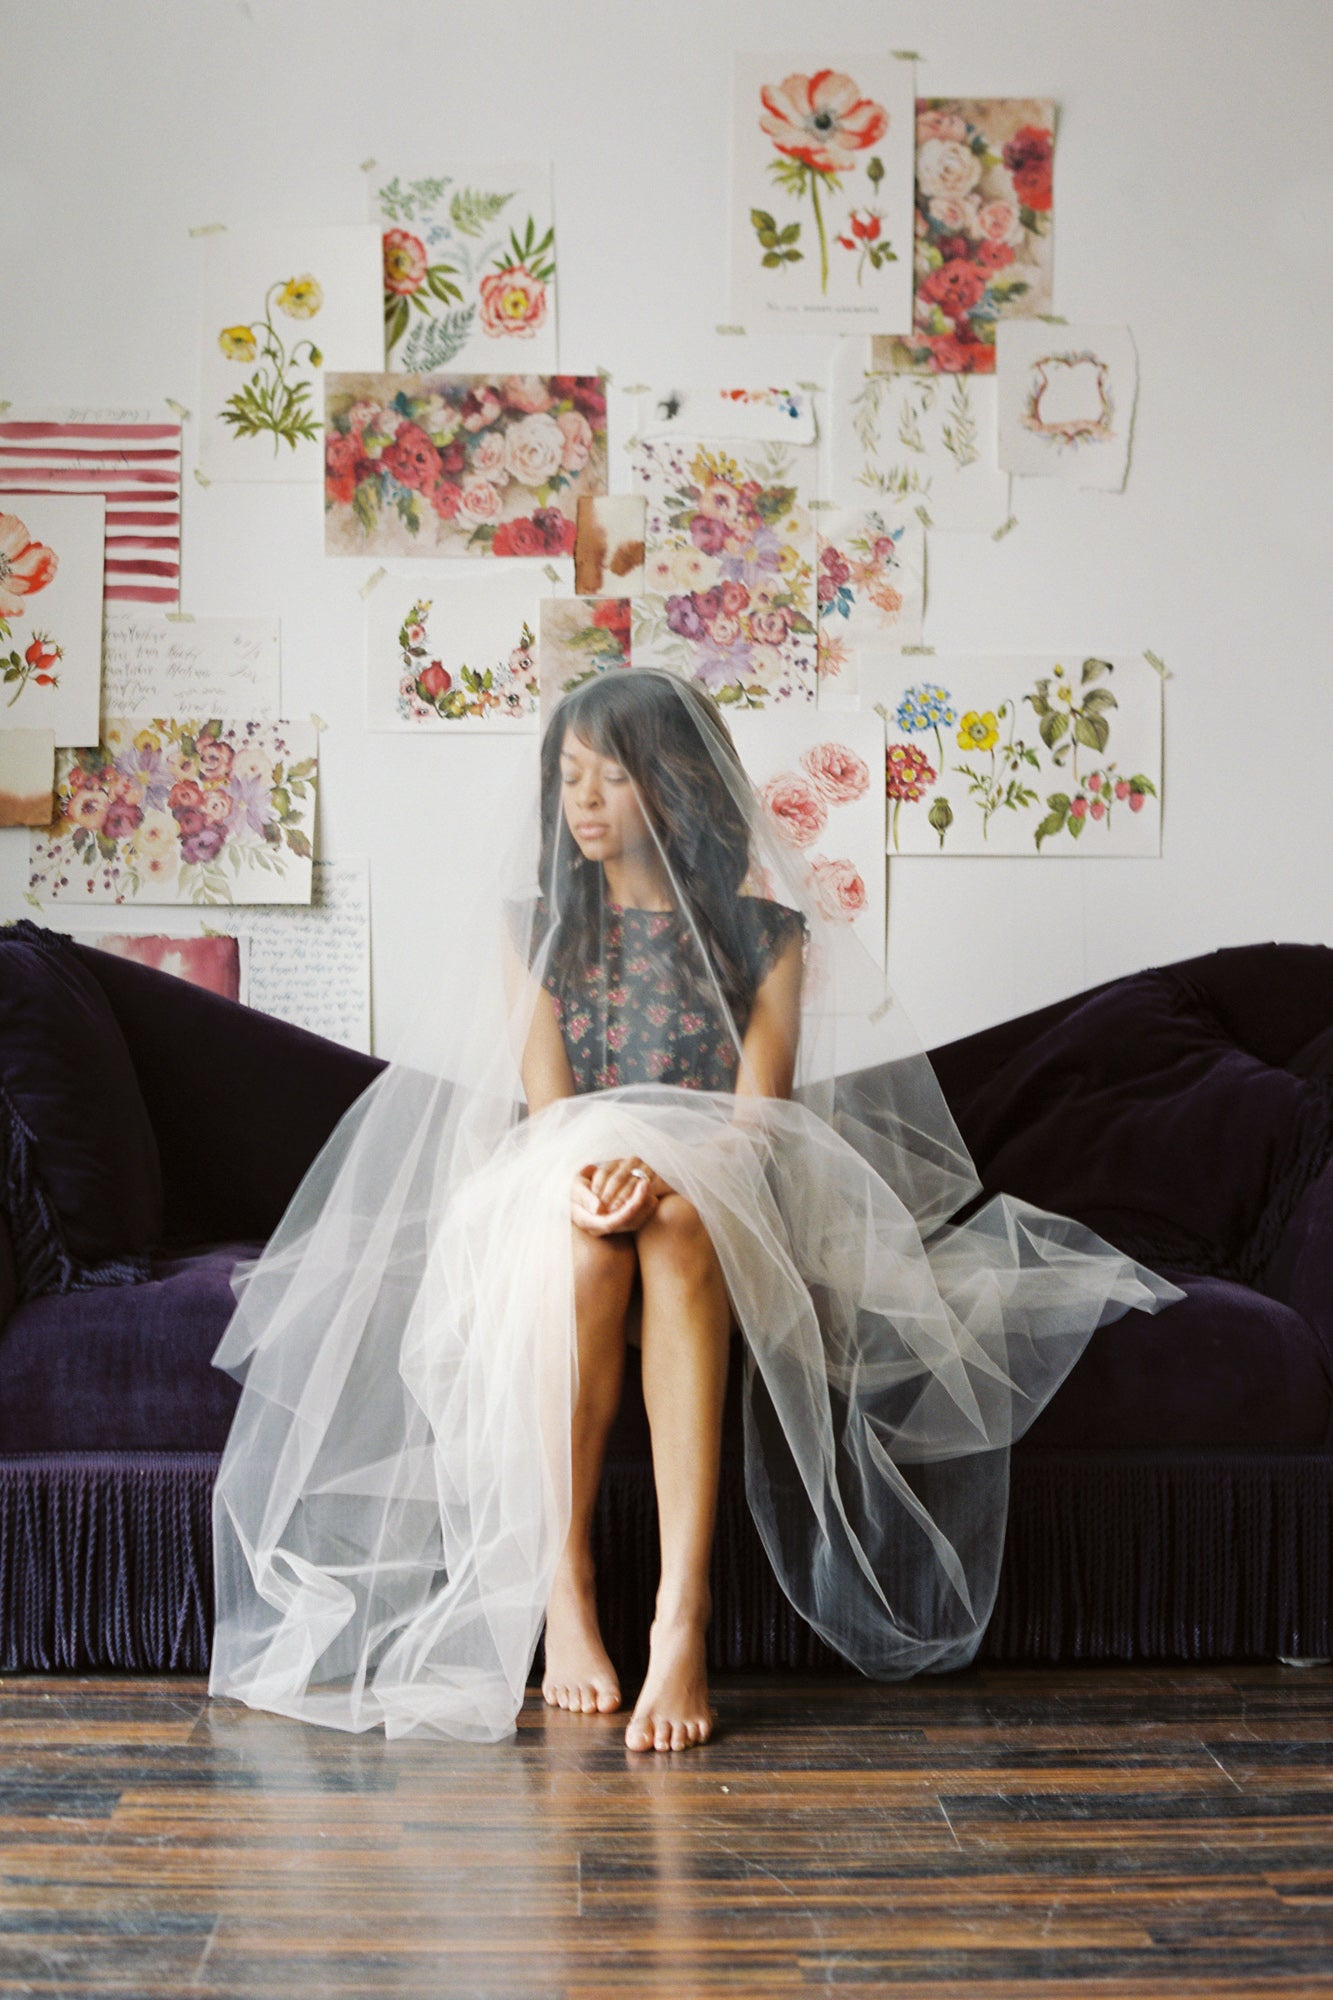 Sweet veil bridal boudoir photo shoot